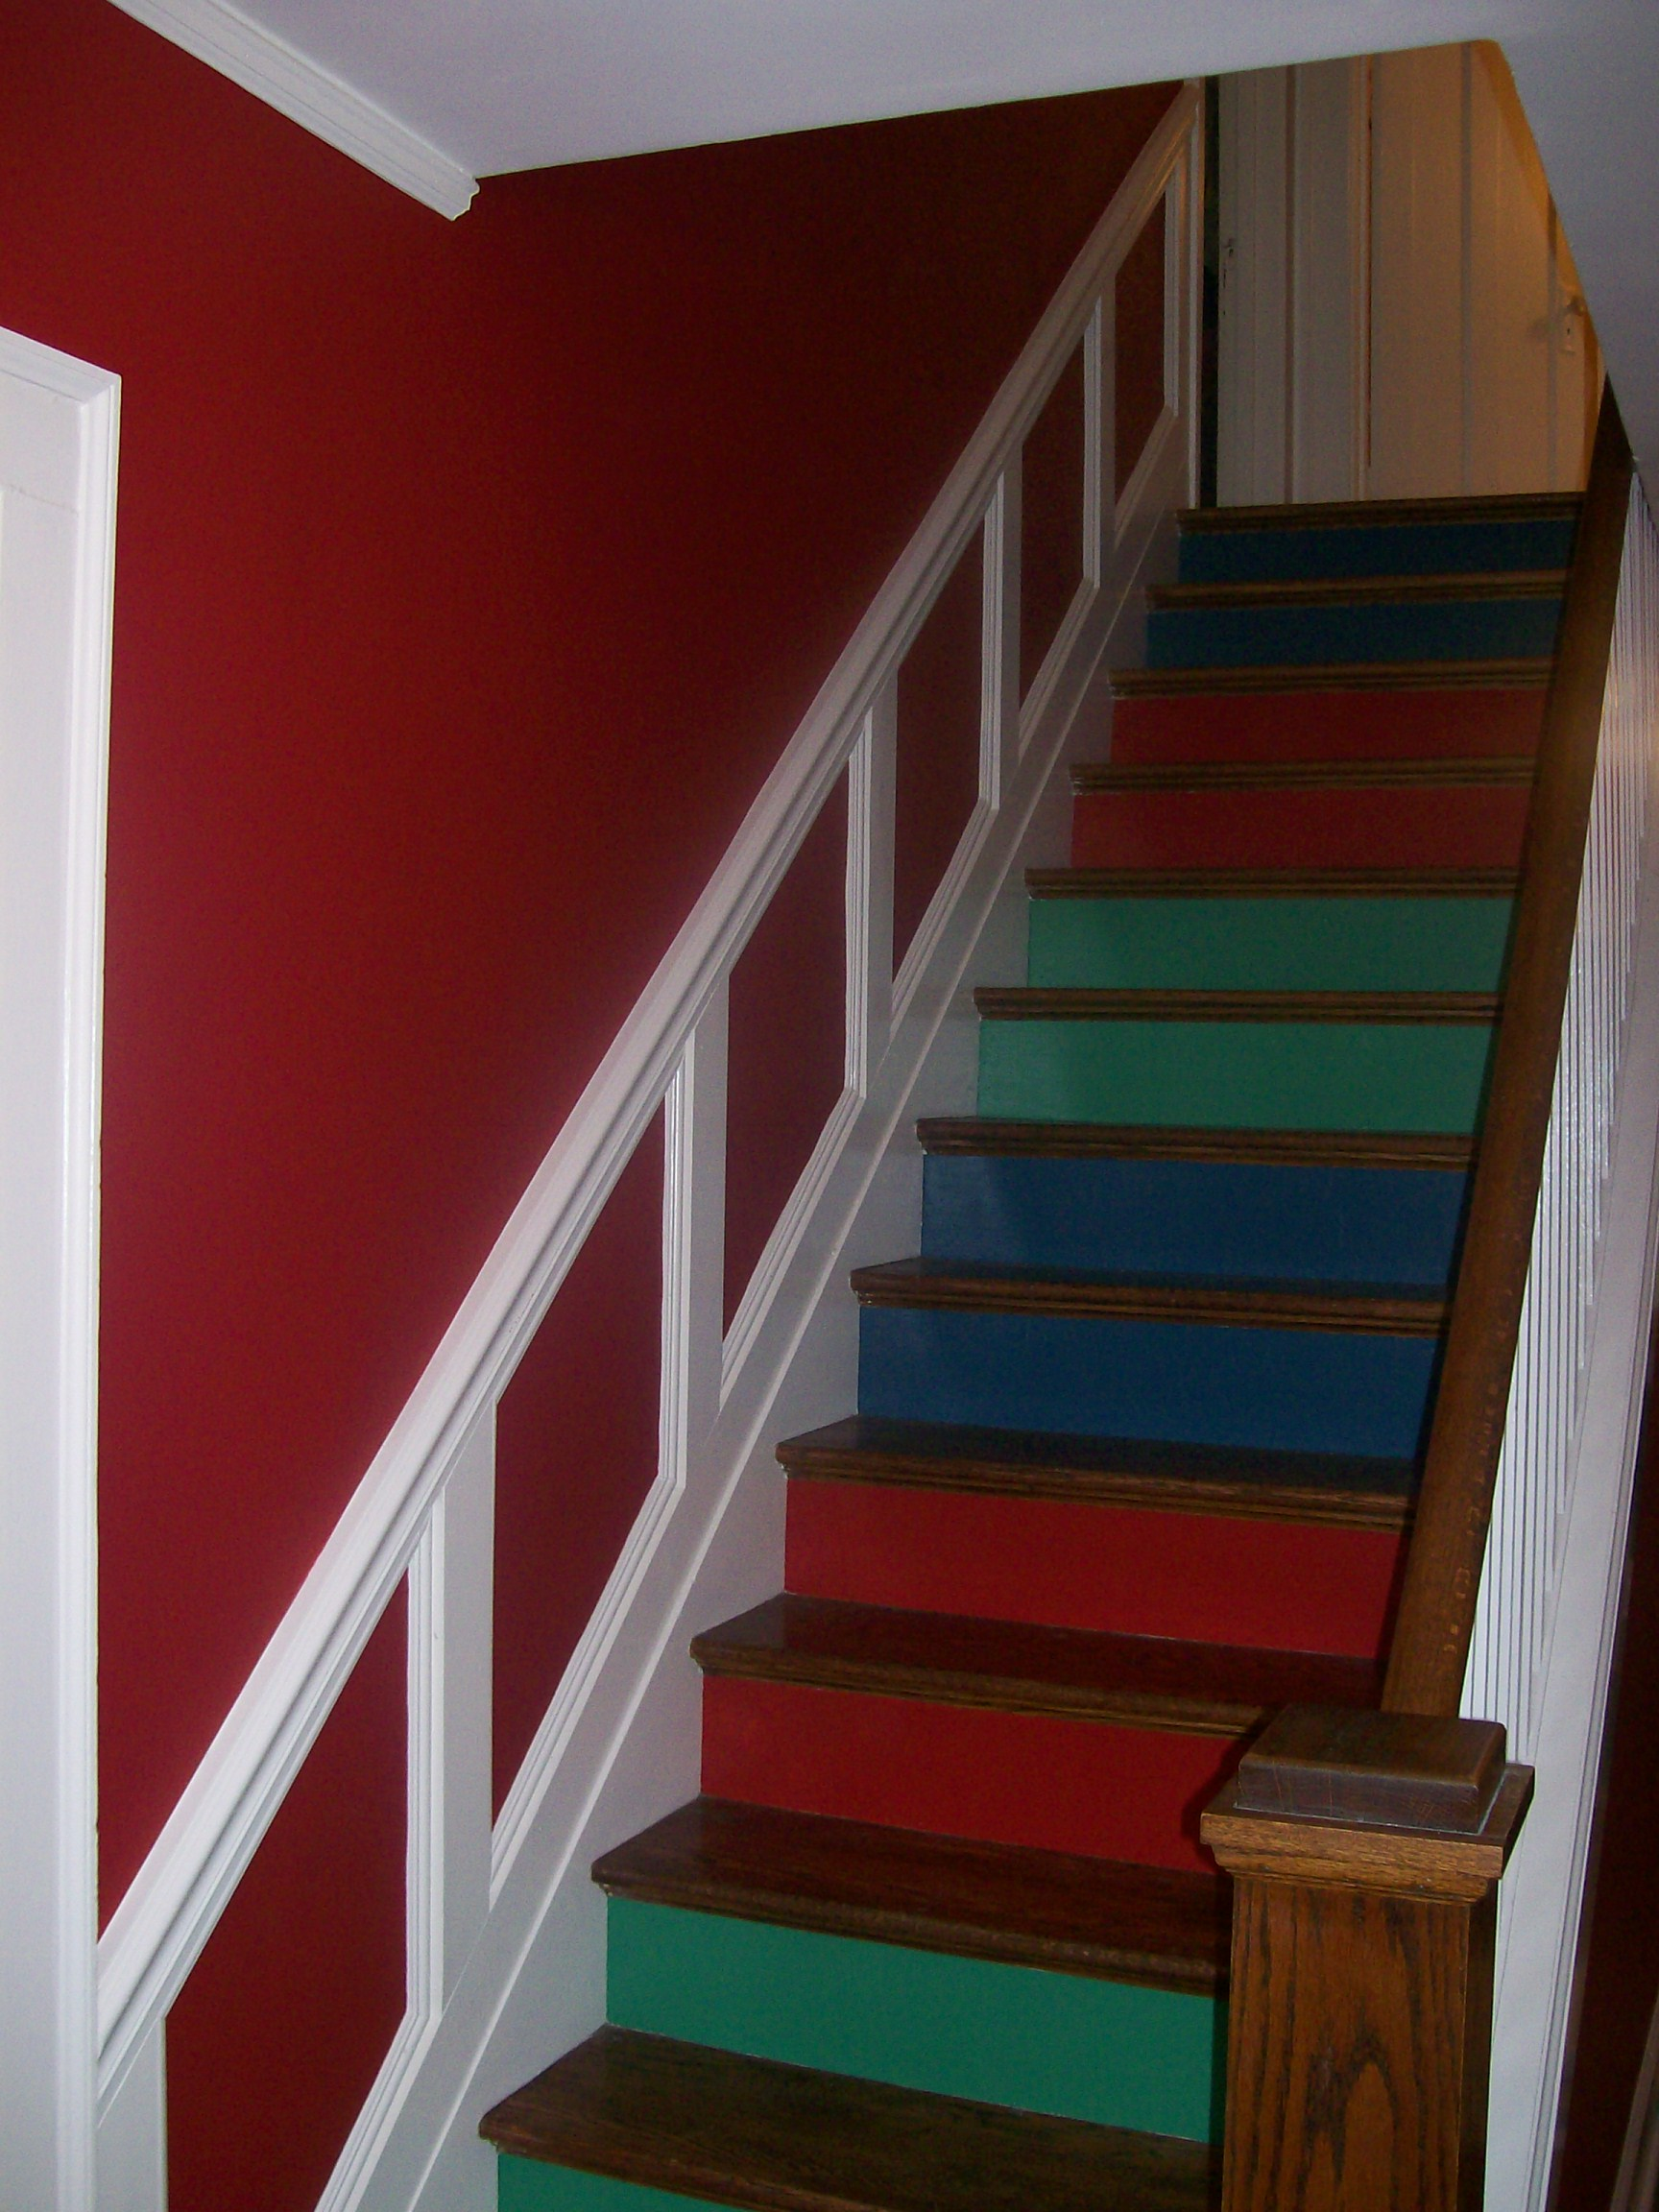 While everyone has their own choice, where colors for interior paints are ...